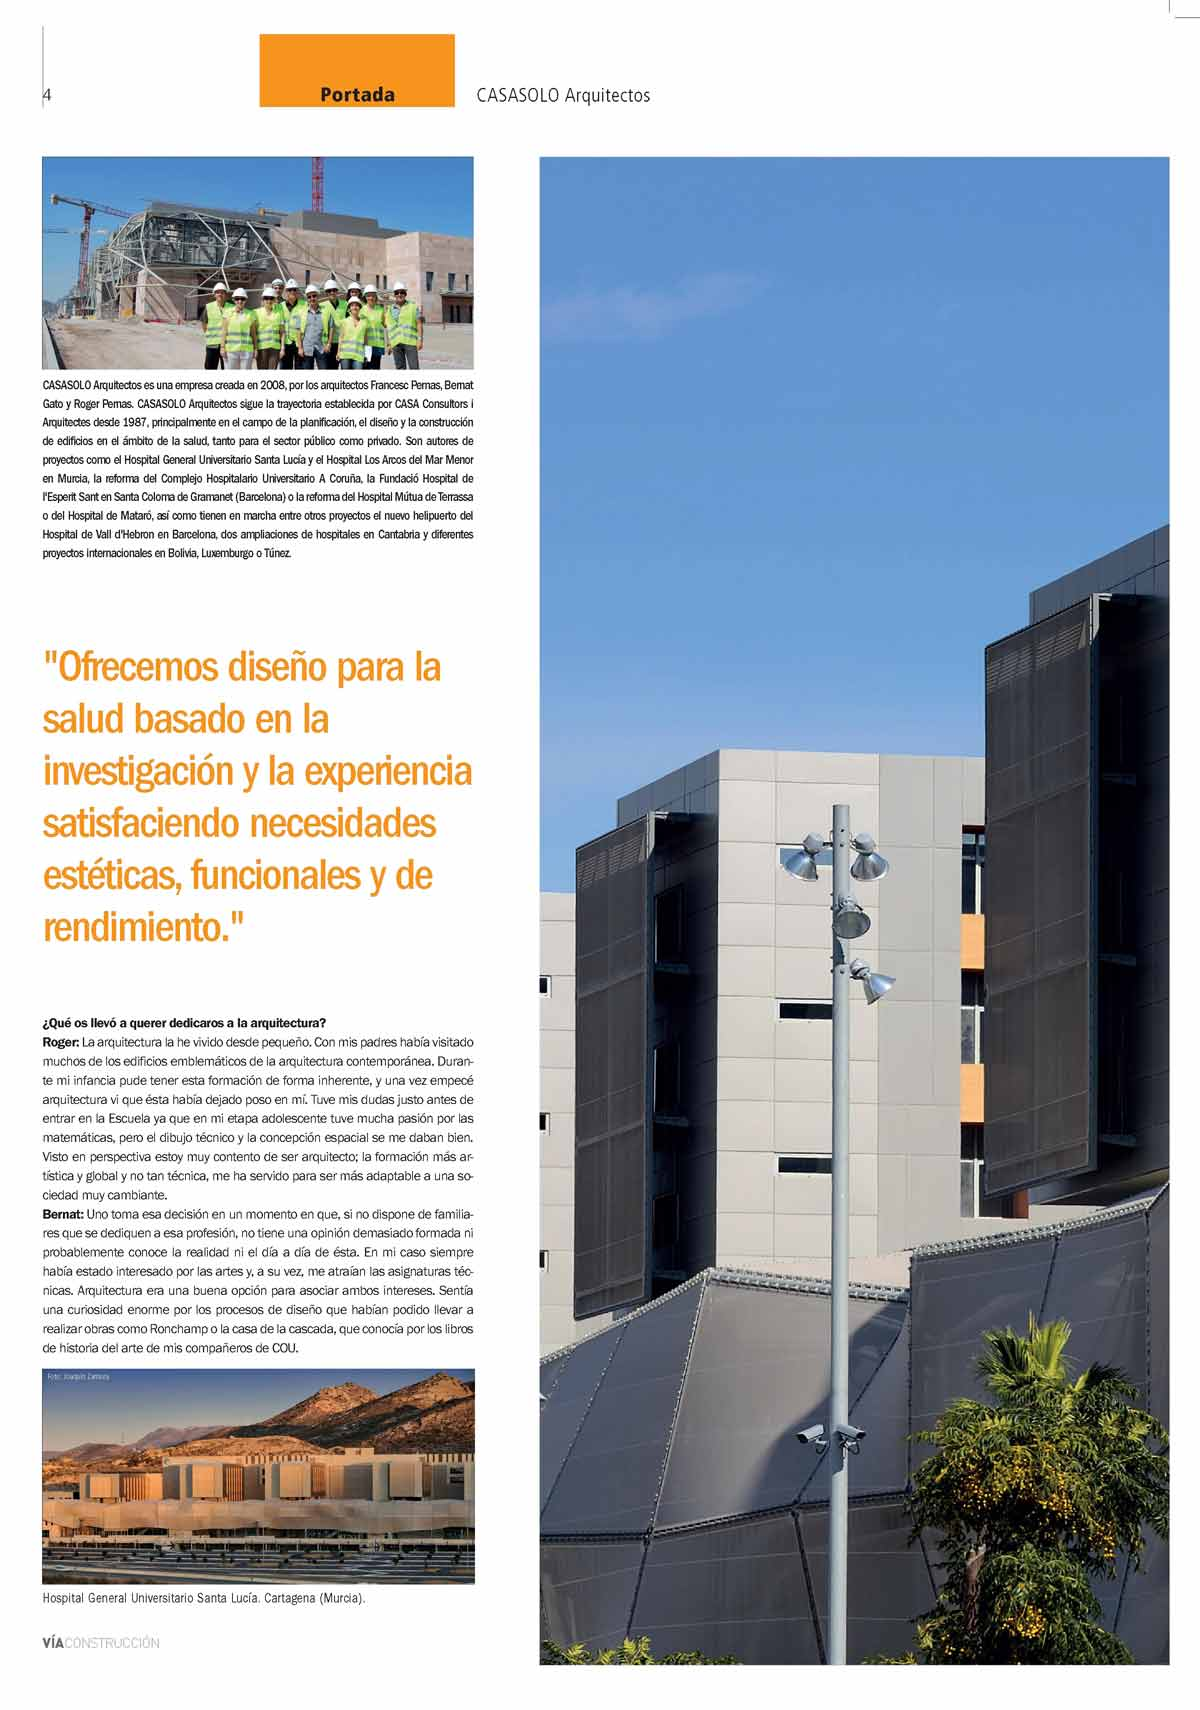 portada-revista-via-construccion-02